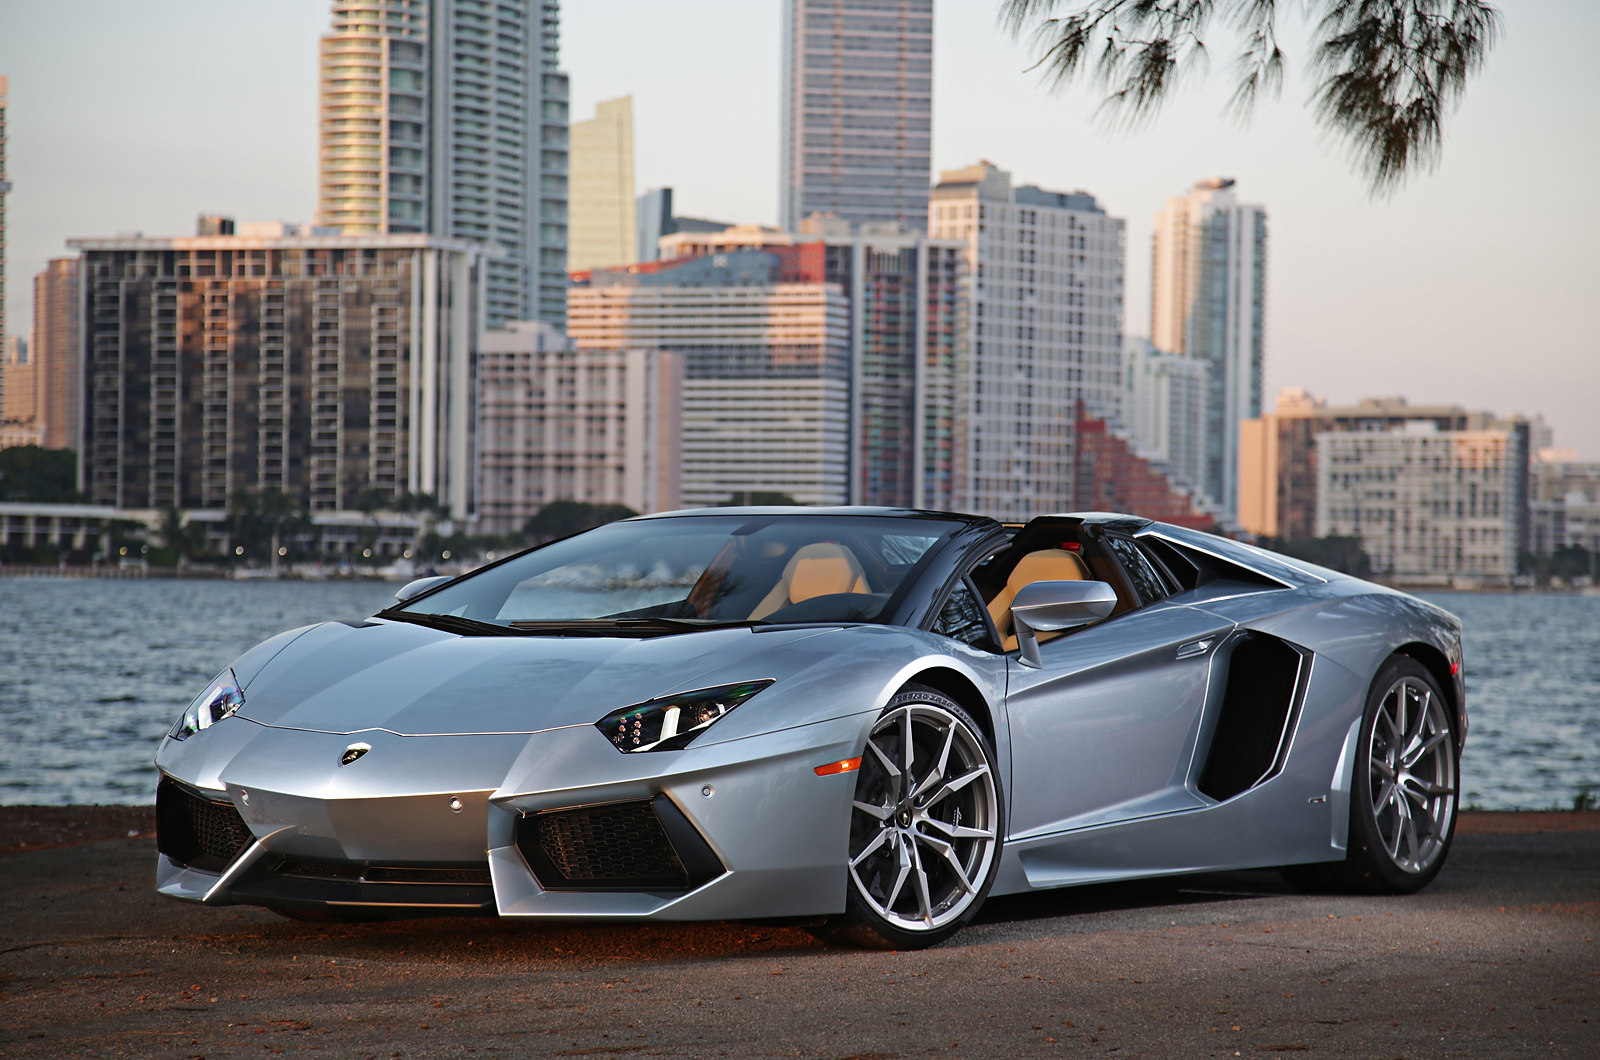 Photo Of The Day: 2014 Lamborghini Aventador Roadster In Miami